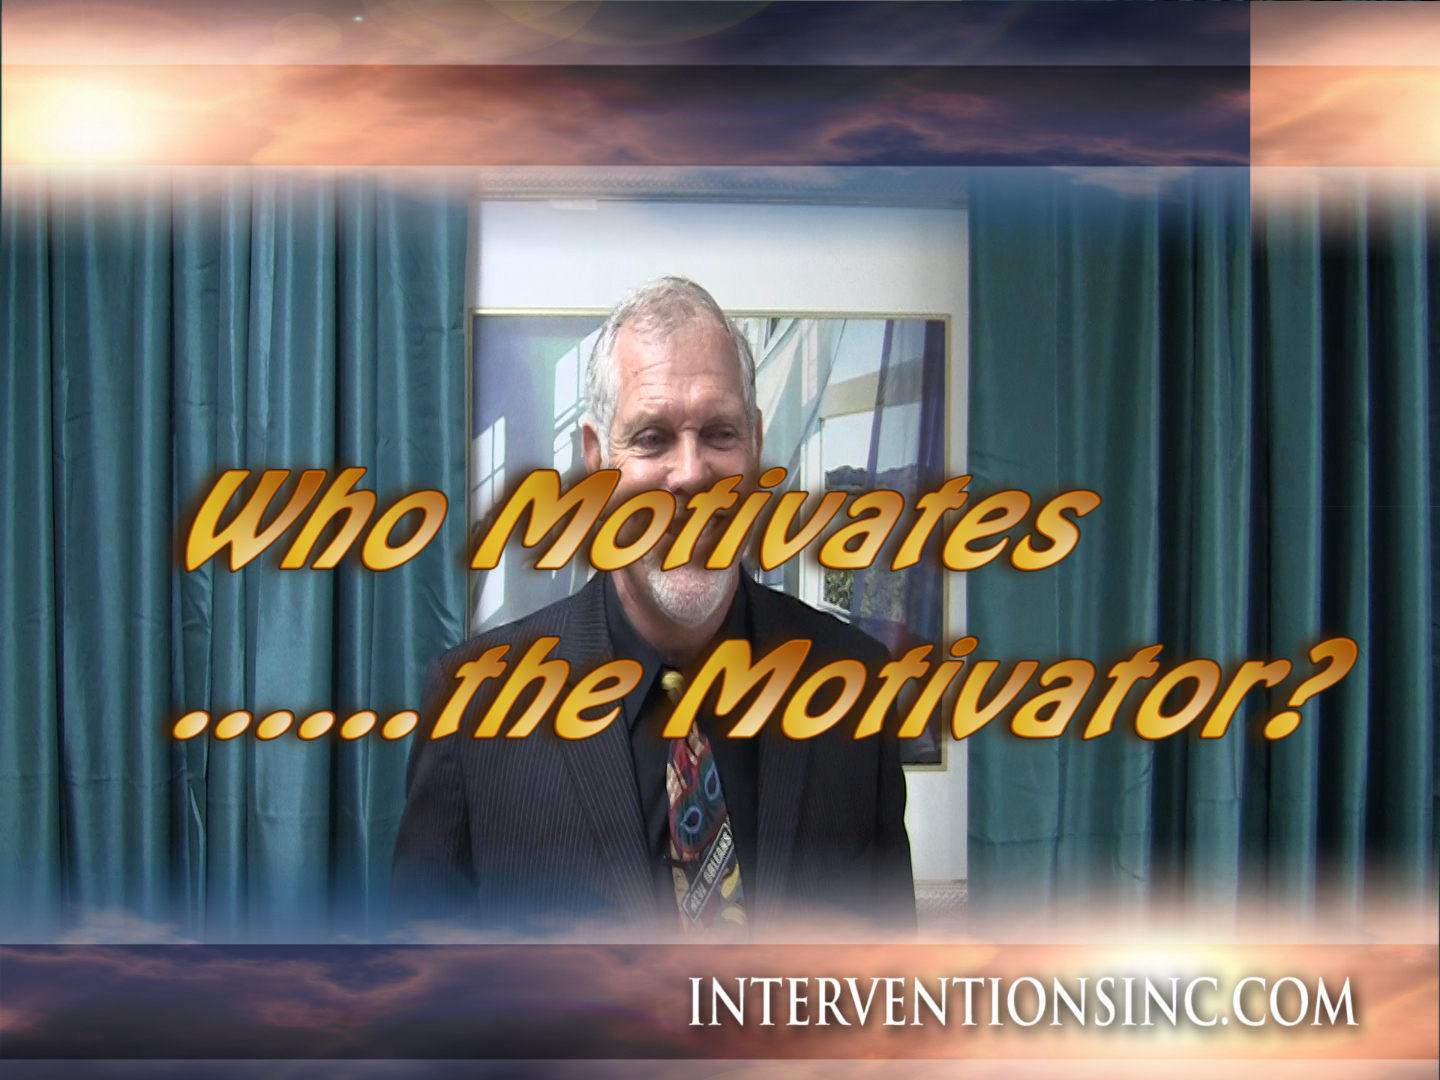 Who Motivates the Motivator?